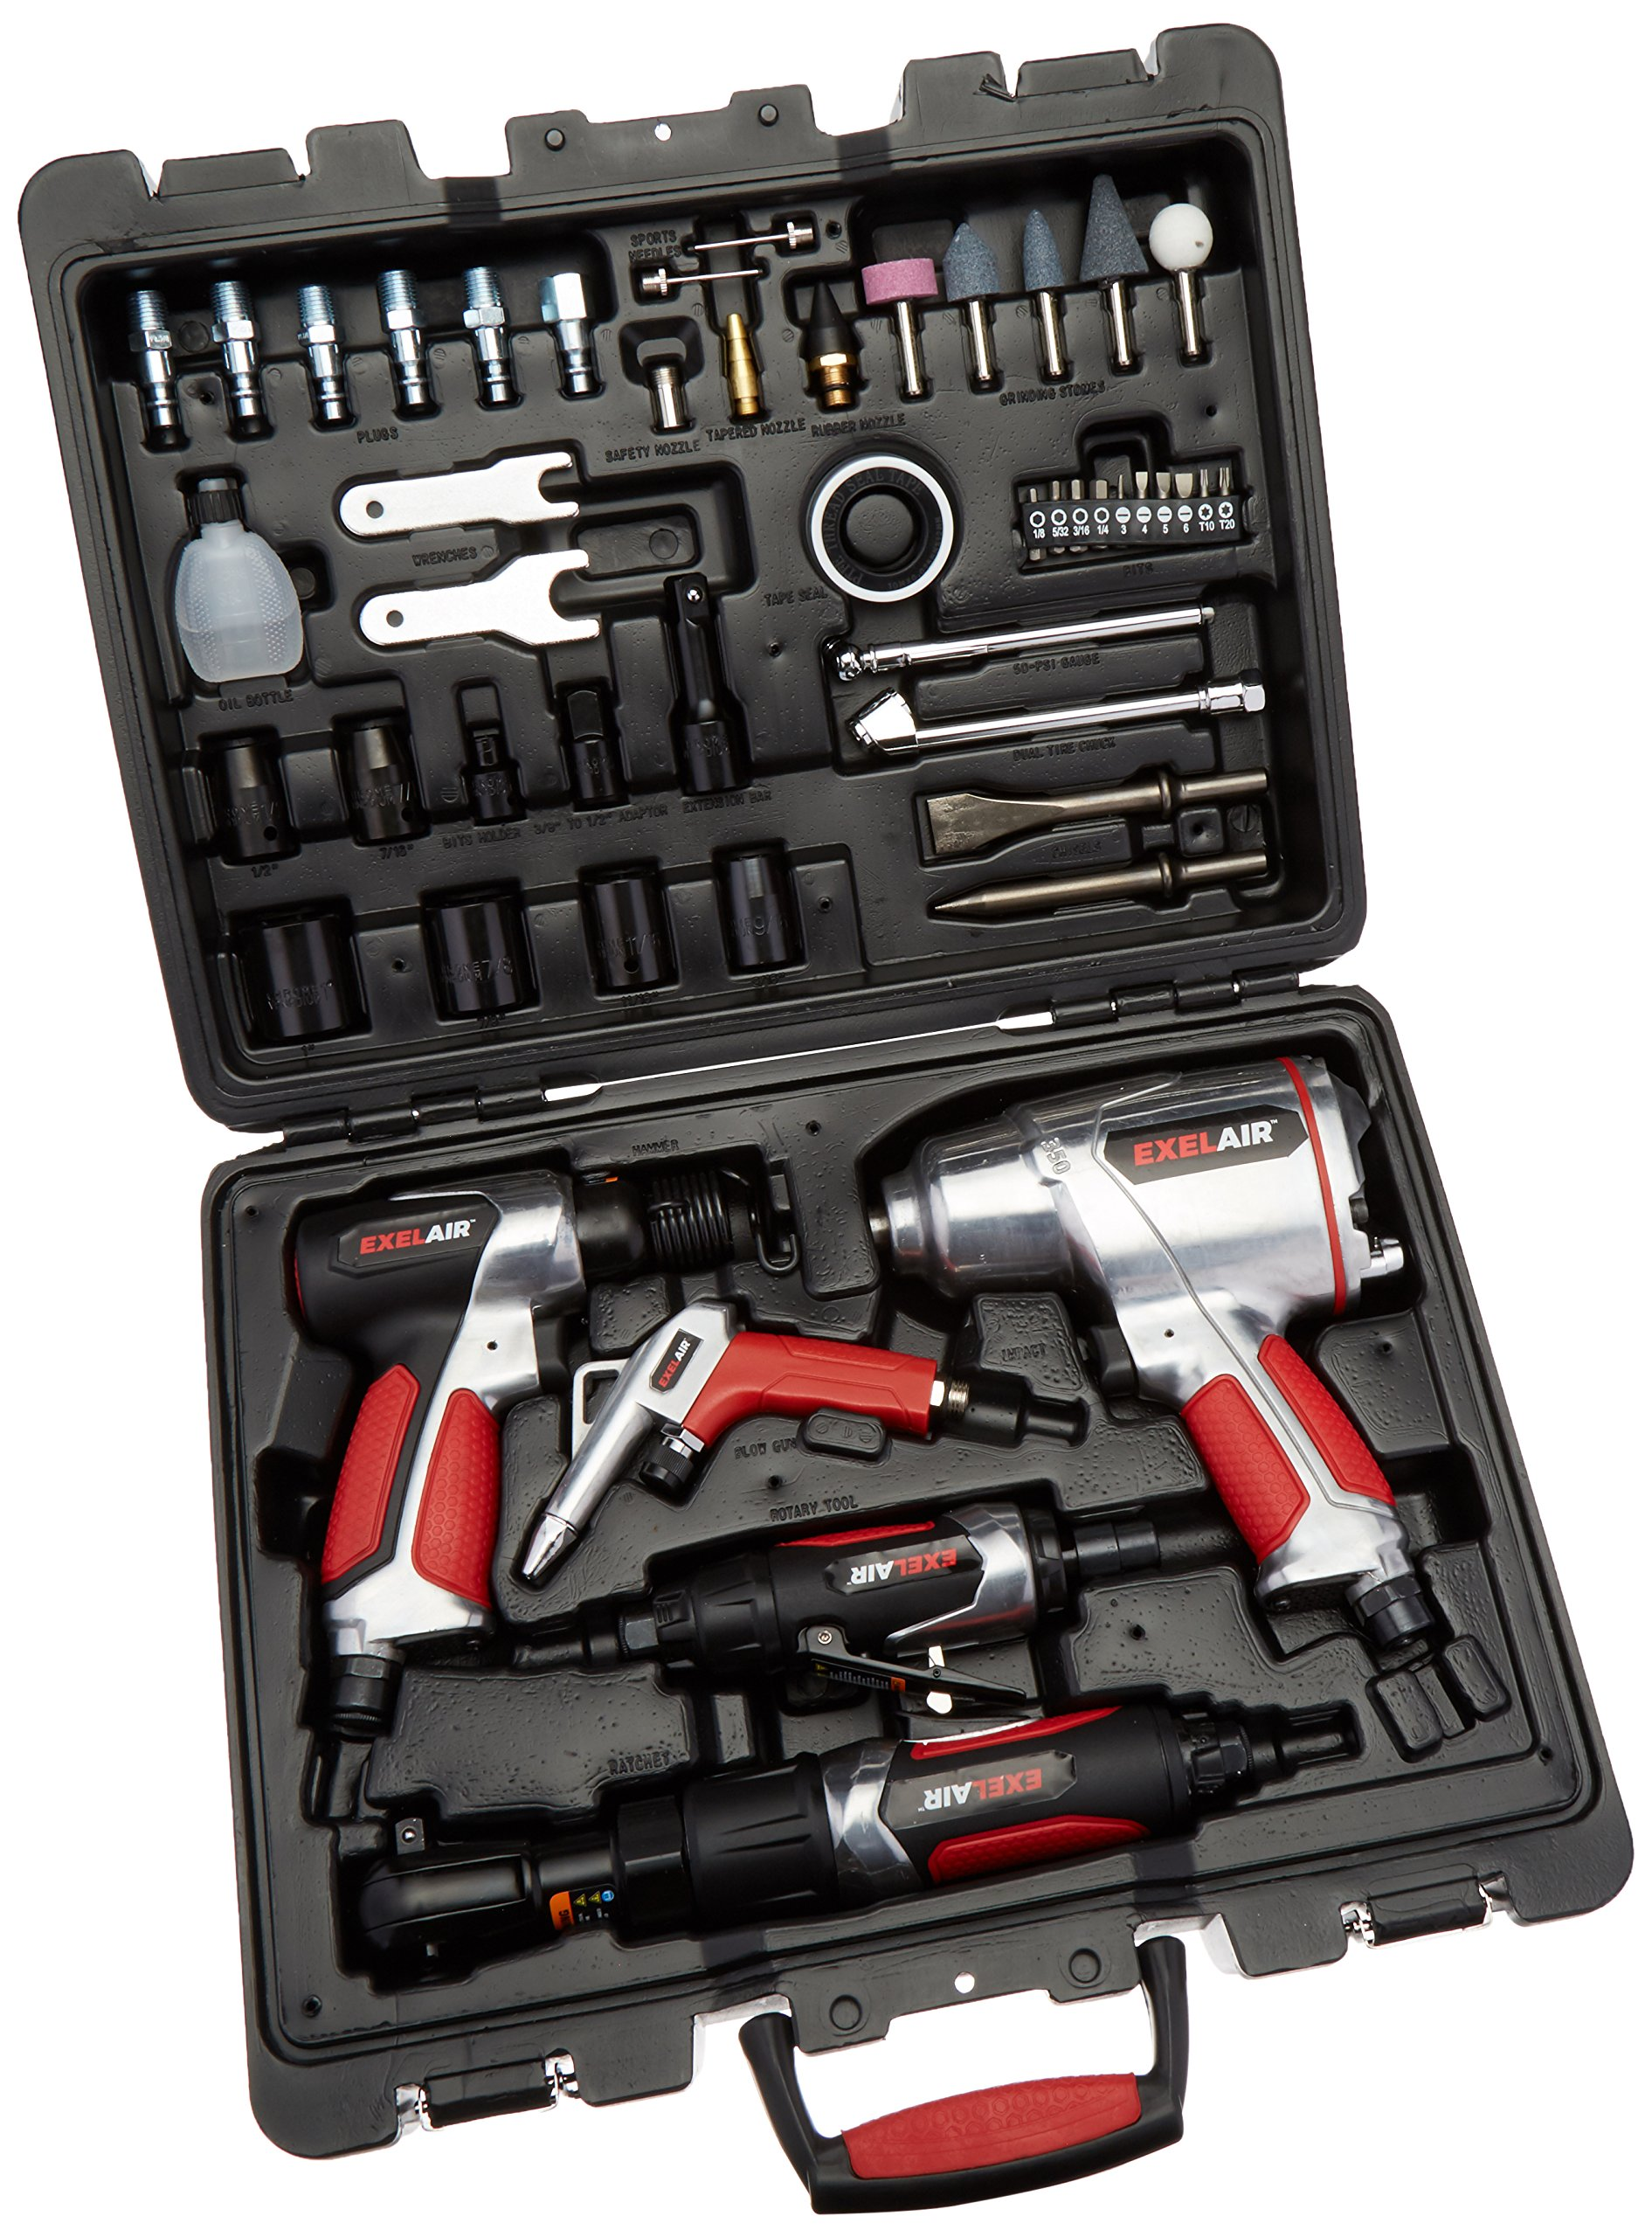 50 Piece Professional Air Tool Kit Amazon Com